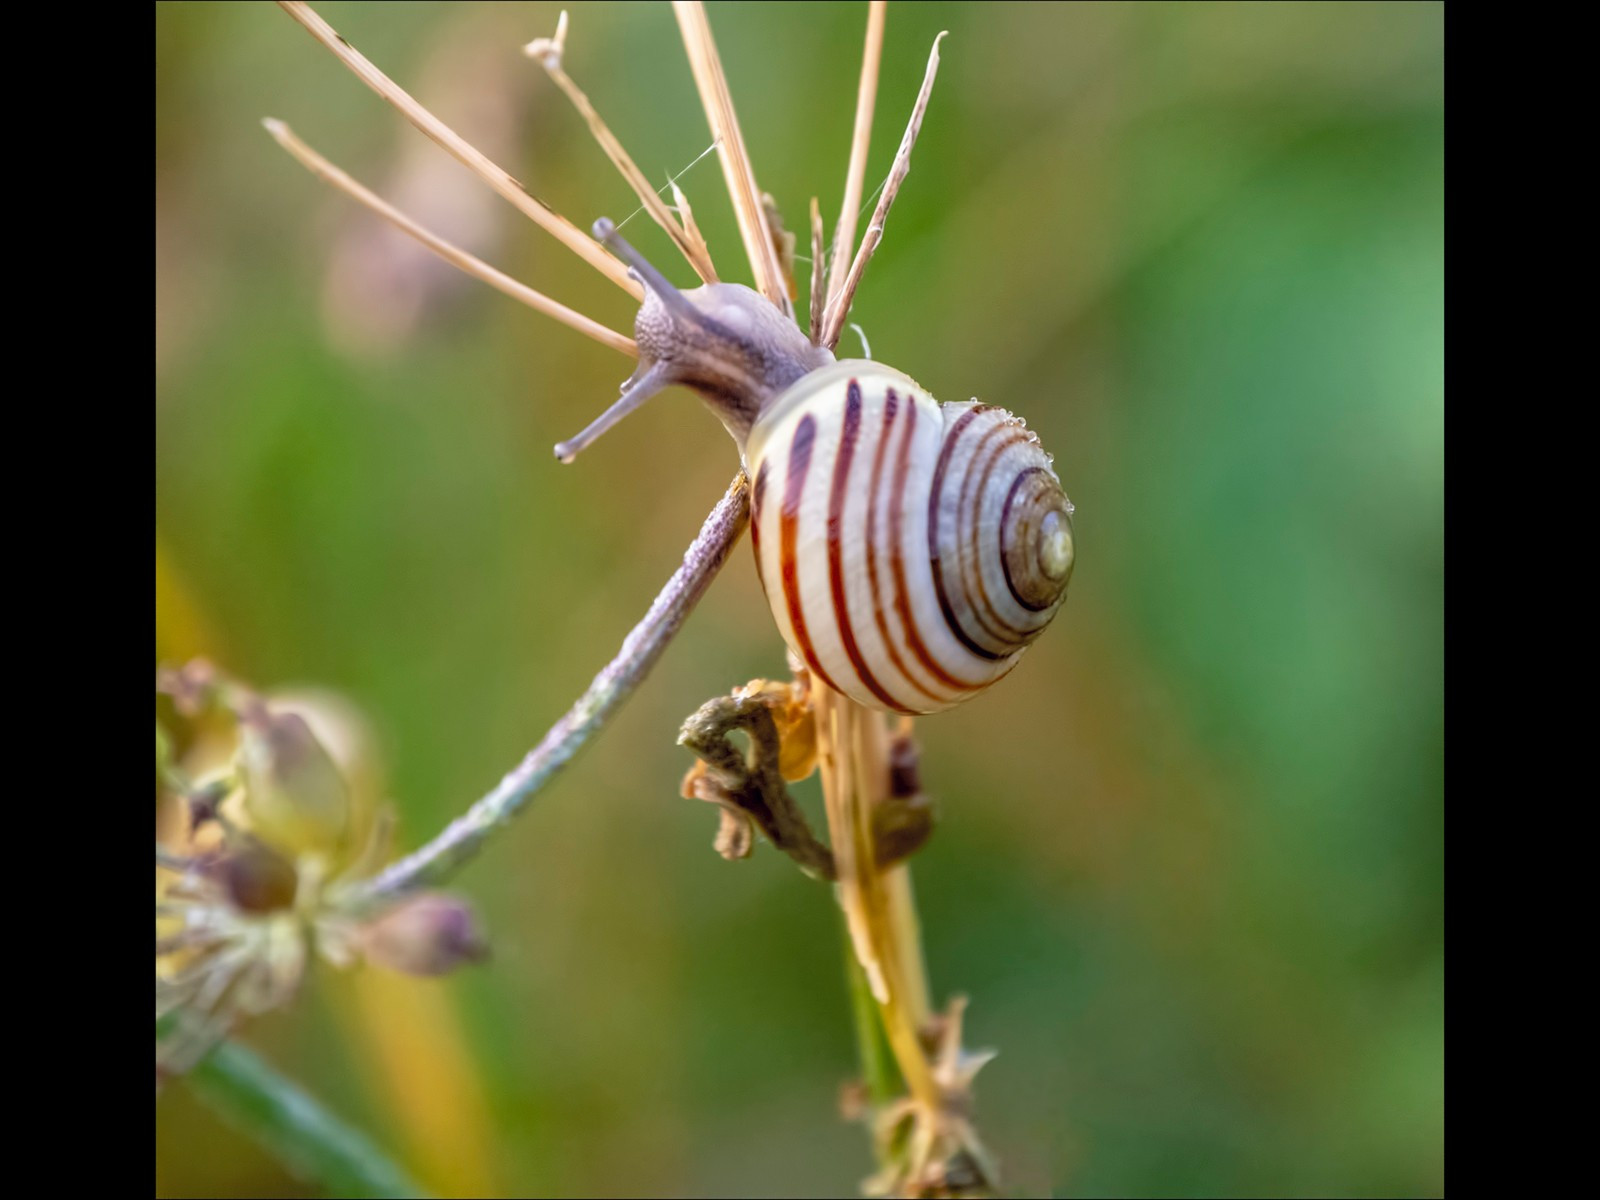 Baby Snail foraging